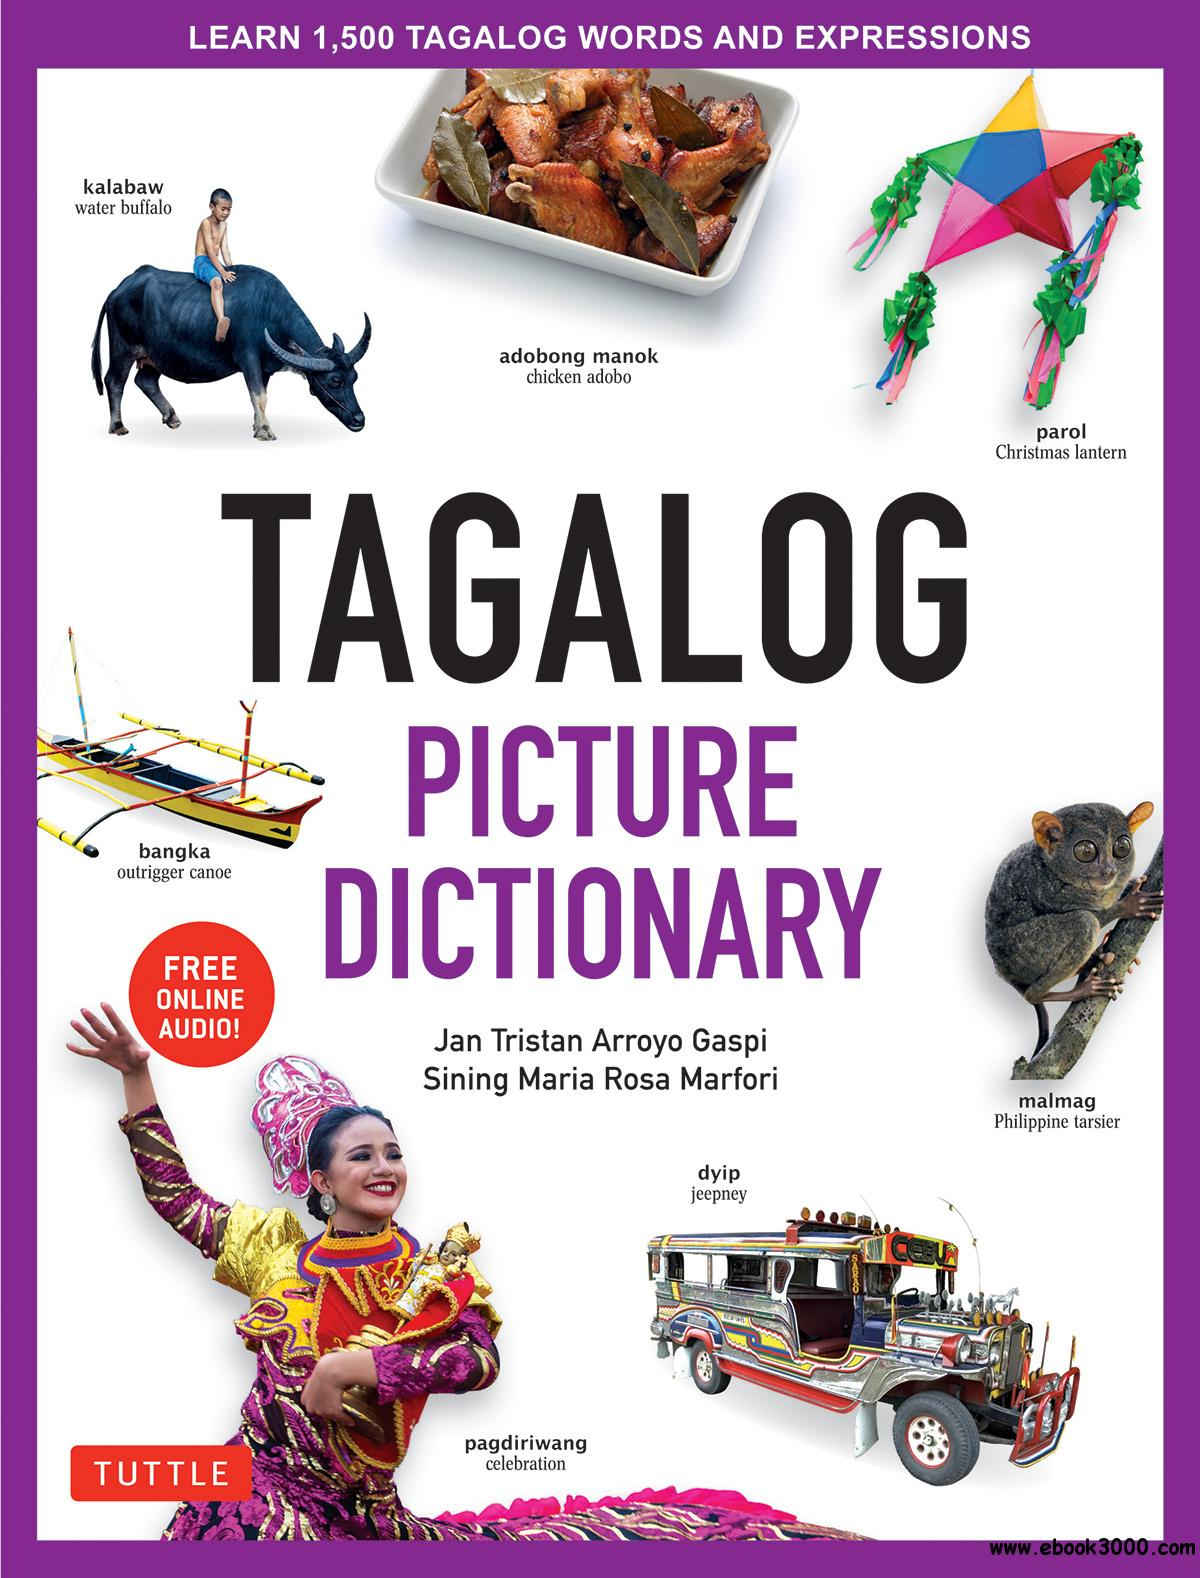 Tagalog Picture Dictionary: Learn 1,500 Tagalog Words and Expressions (Includes Online Audio) (Tuttle Picture Dictionary)